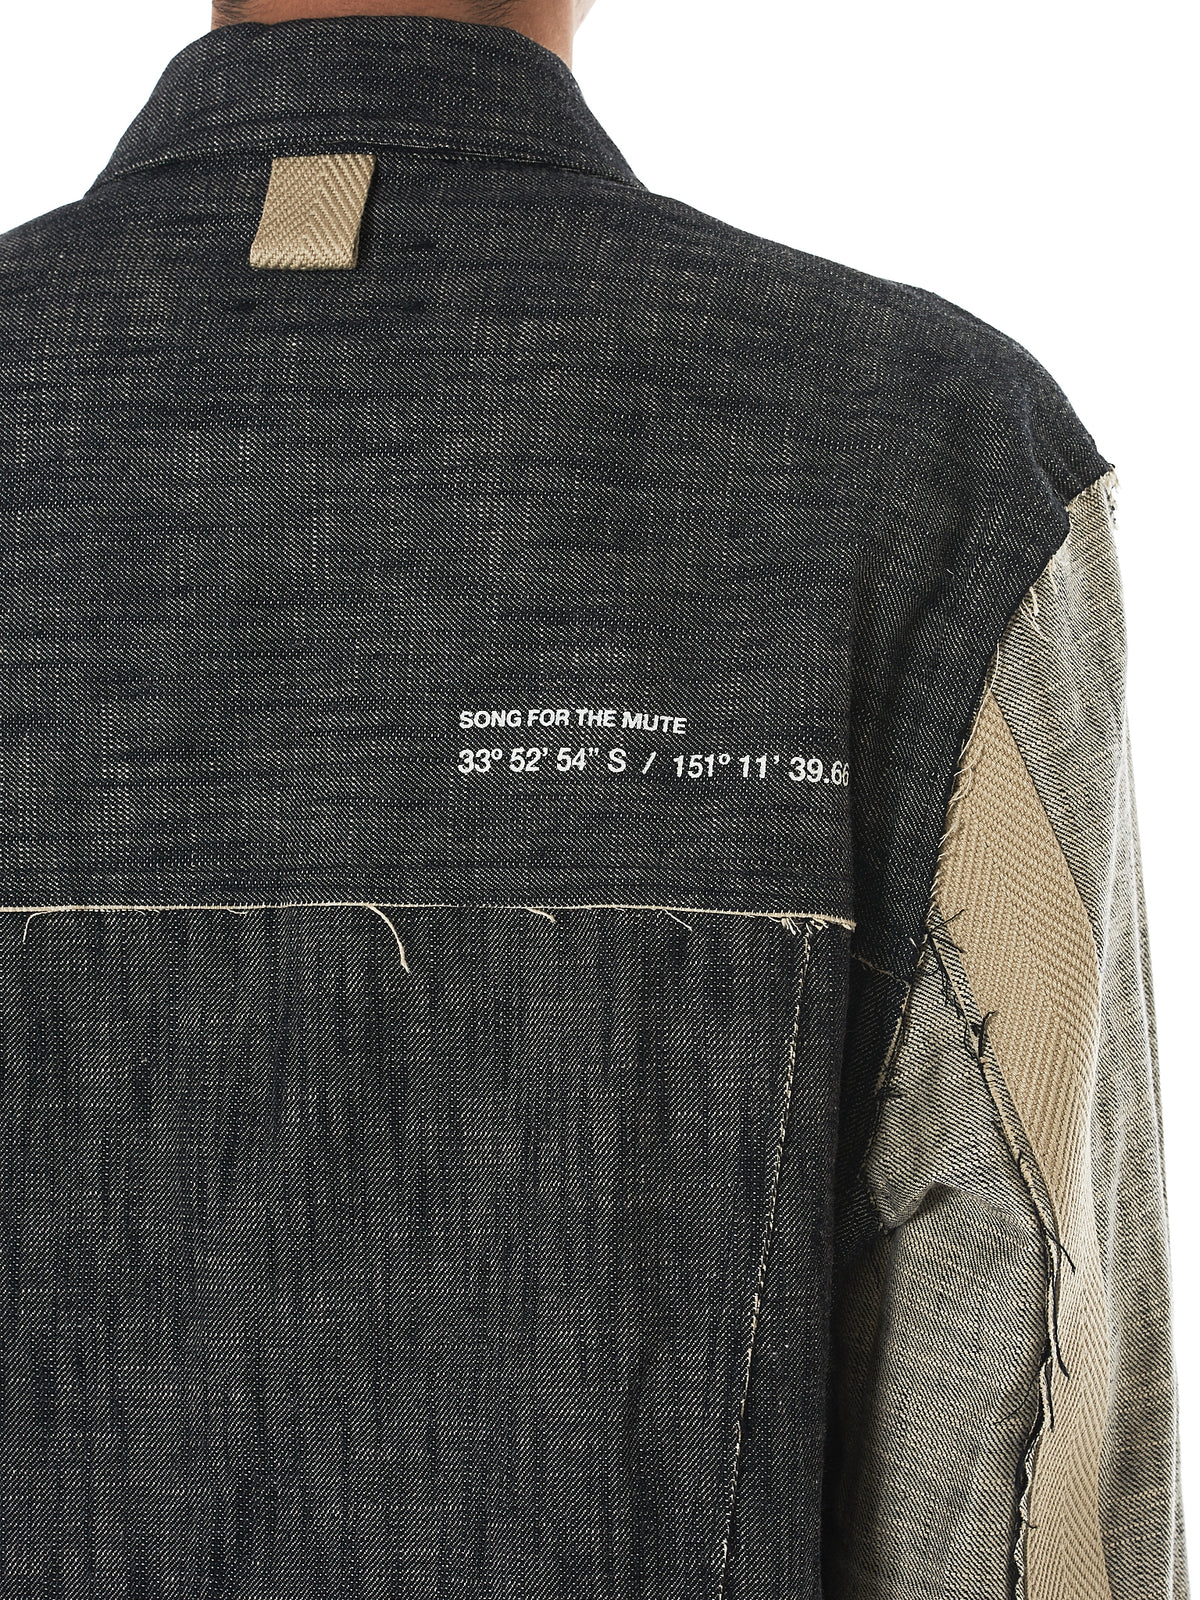 Song For The Mute 'Wander' Jacket - Hlorenzo Detail 2